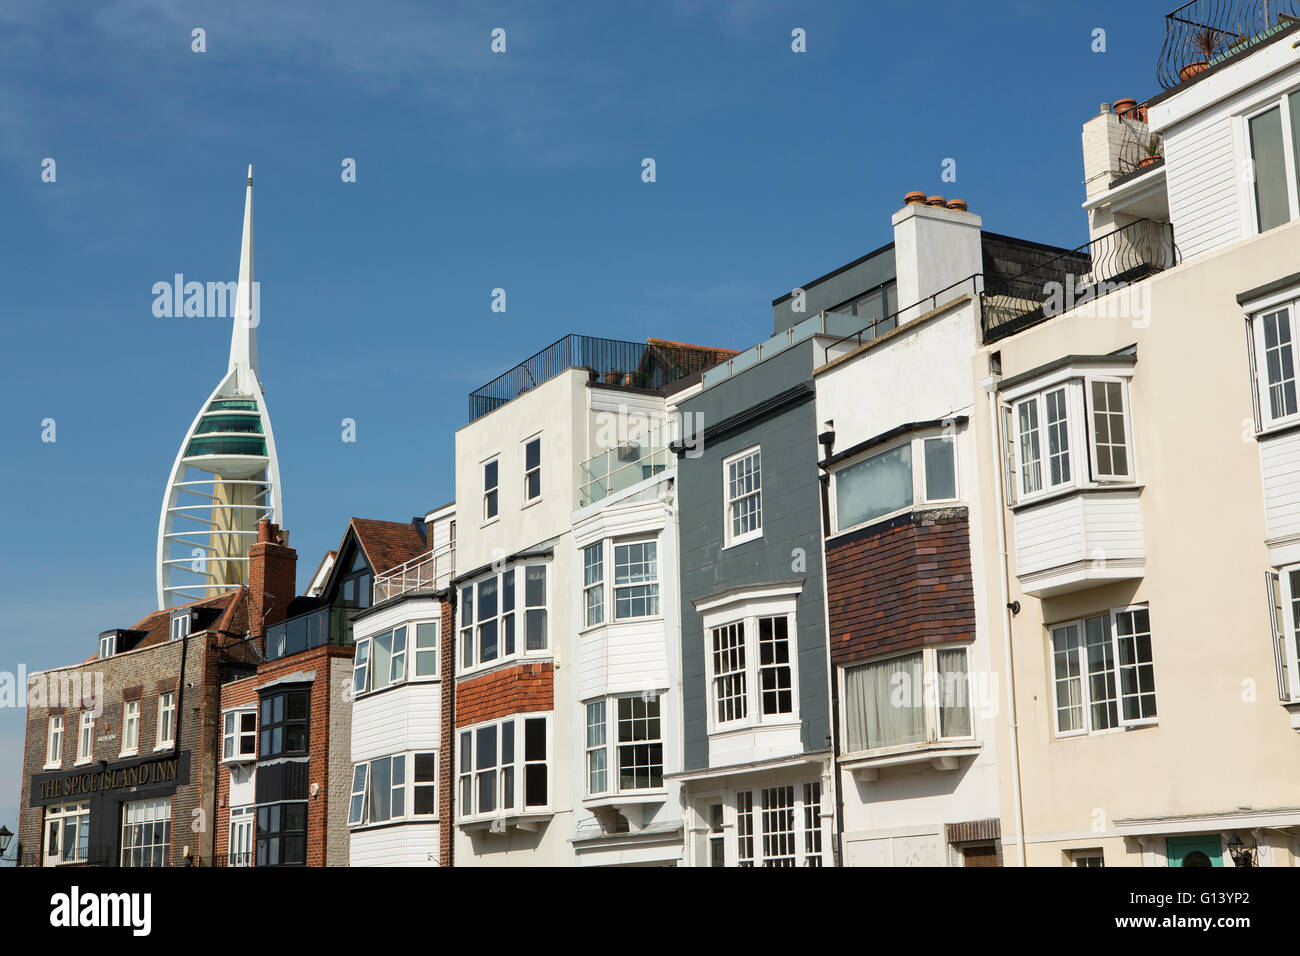 Row of heritage properties on Spice Island in Old Portsmouth. Portsmouth's landmark Emirates tower can be seen in Stock Photo